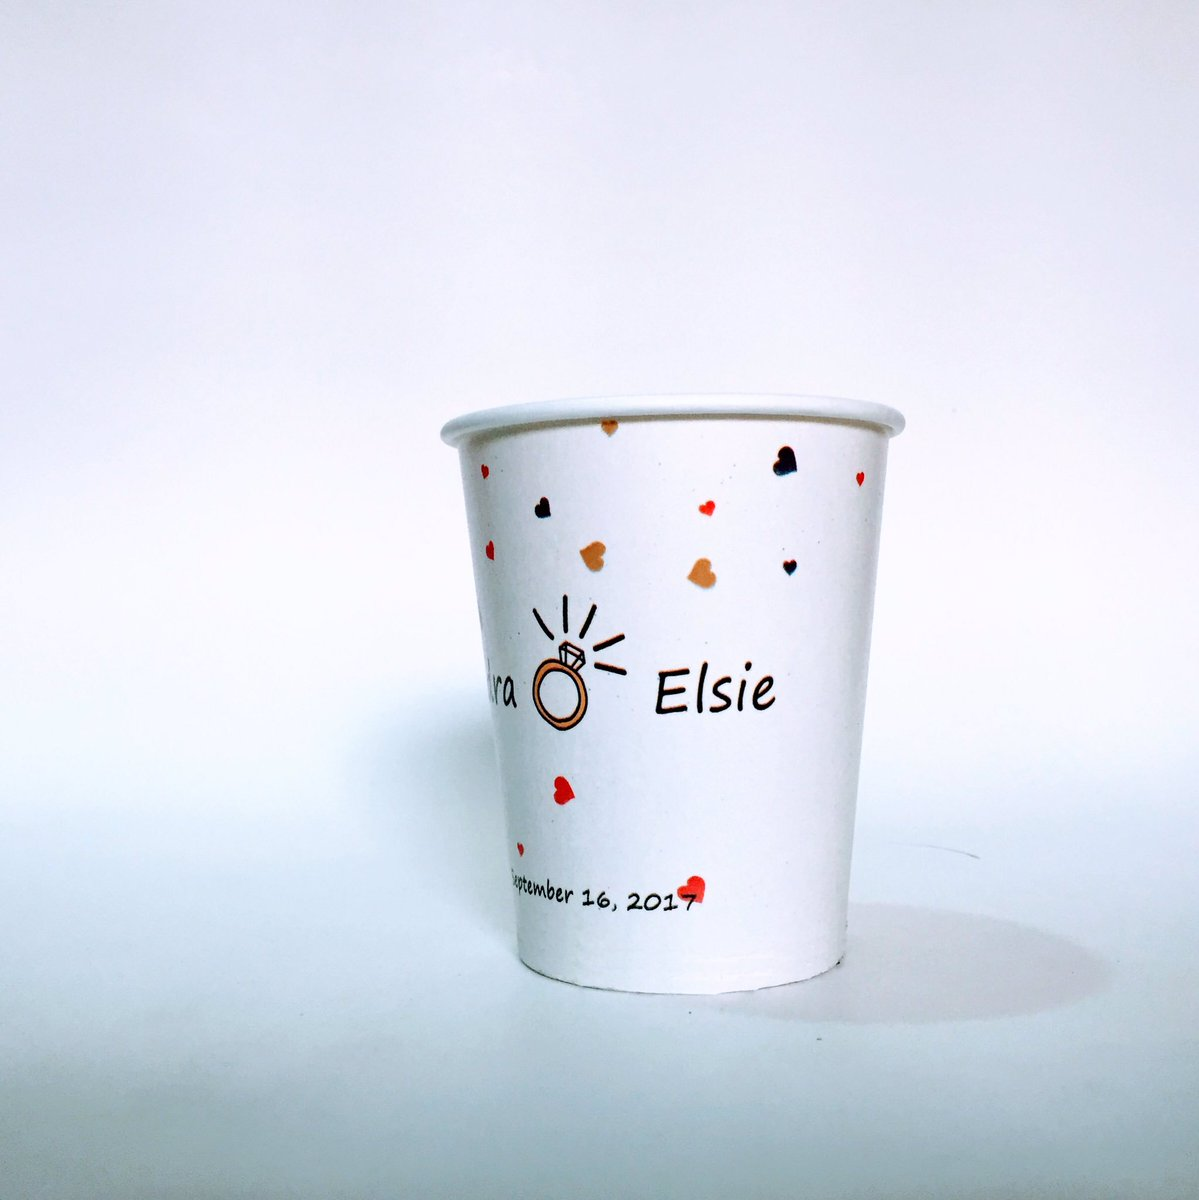 Now you could get 1,000 #custom [full color] paper cups for just N50,000. #Branding #Event #bespoke   Limited Offer<br>http://pic.twitter.com/yEDzSOPq4L